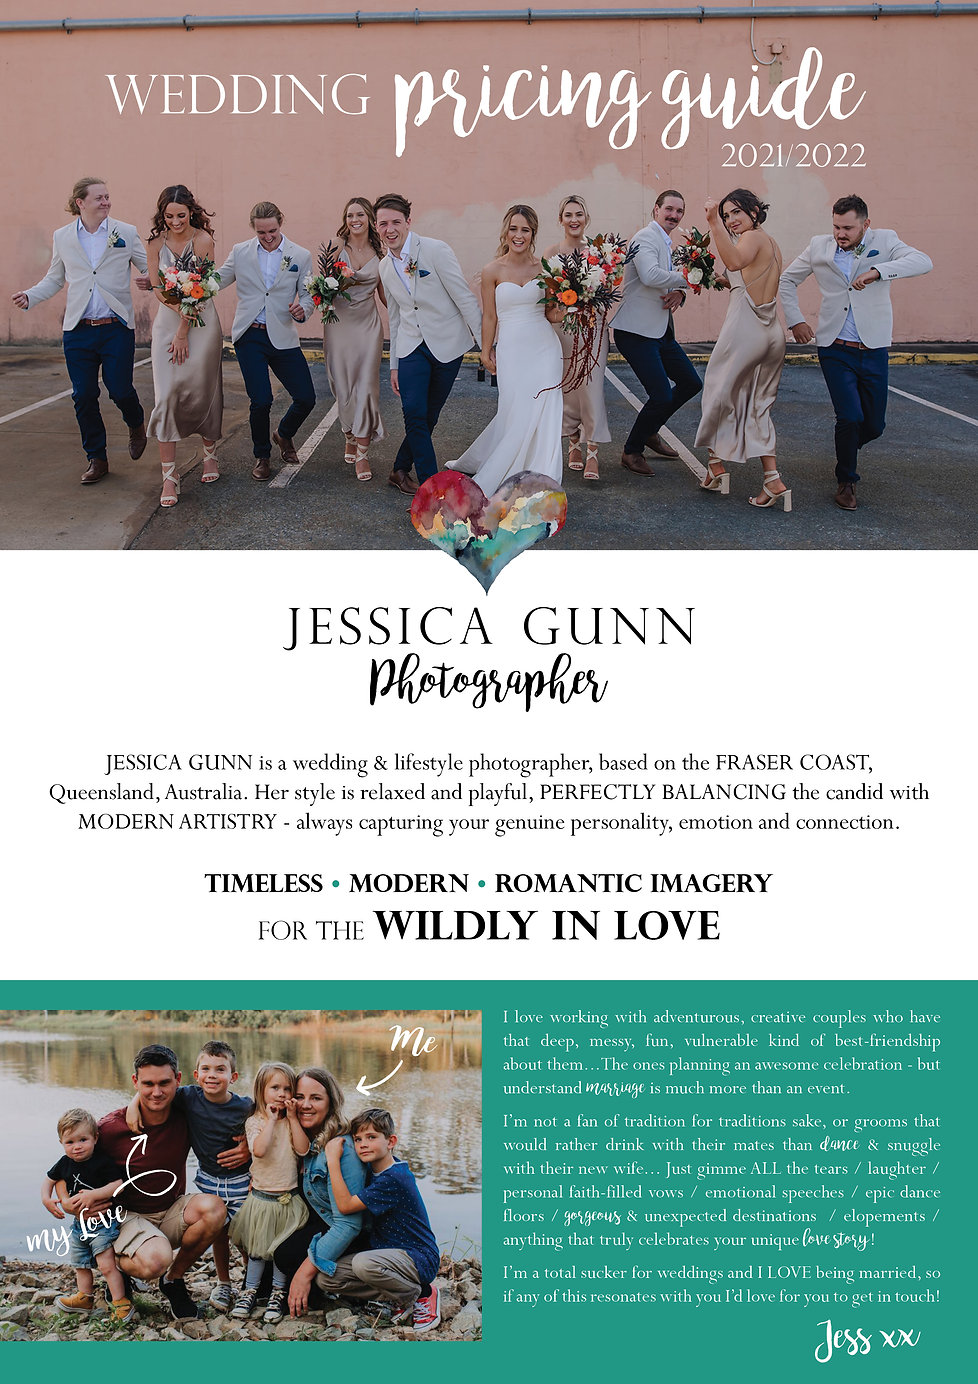 JGP Wedding Package Pricing Guide 21-22.